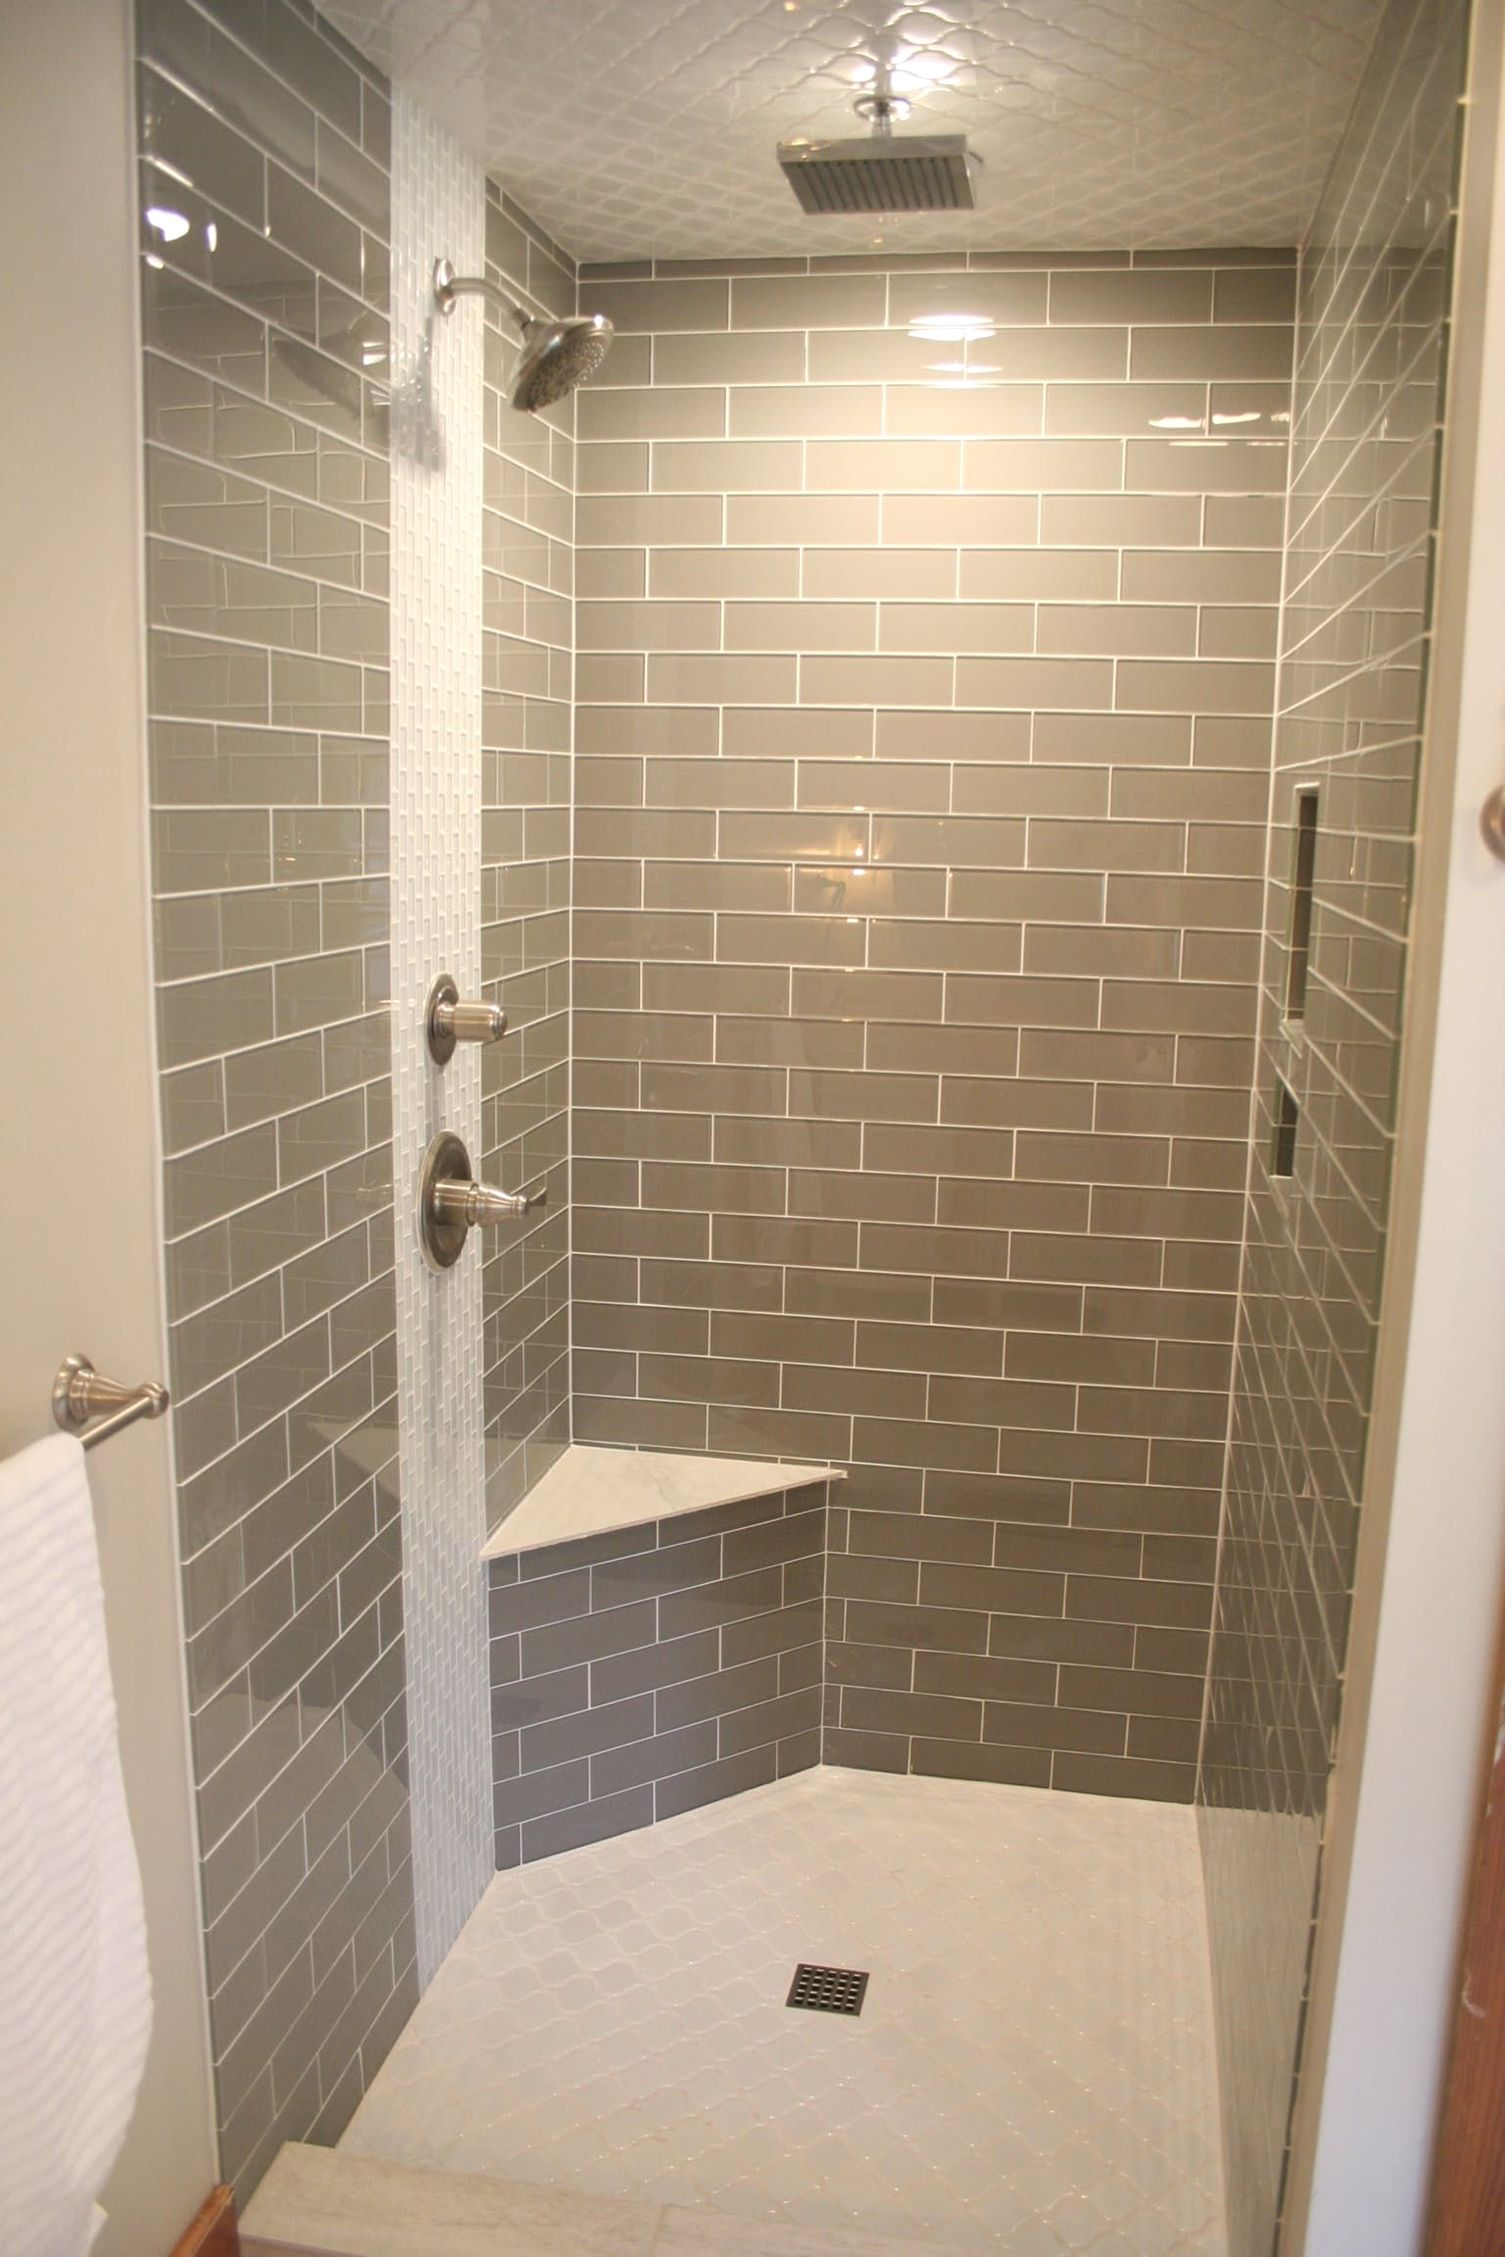 Remodeling Bathroom Without Permit Bathroomremodeling Small